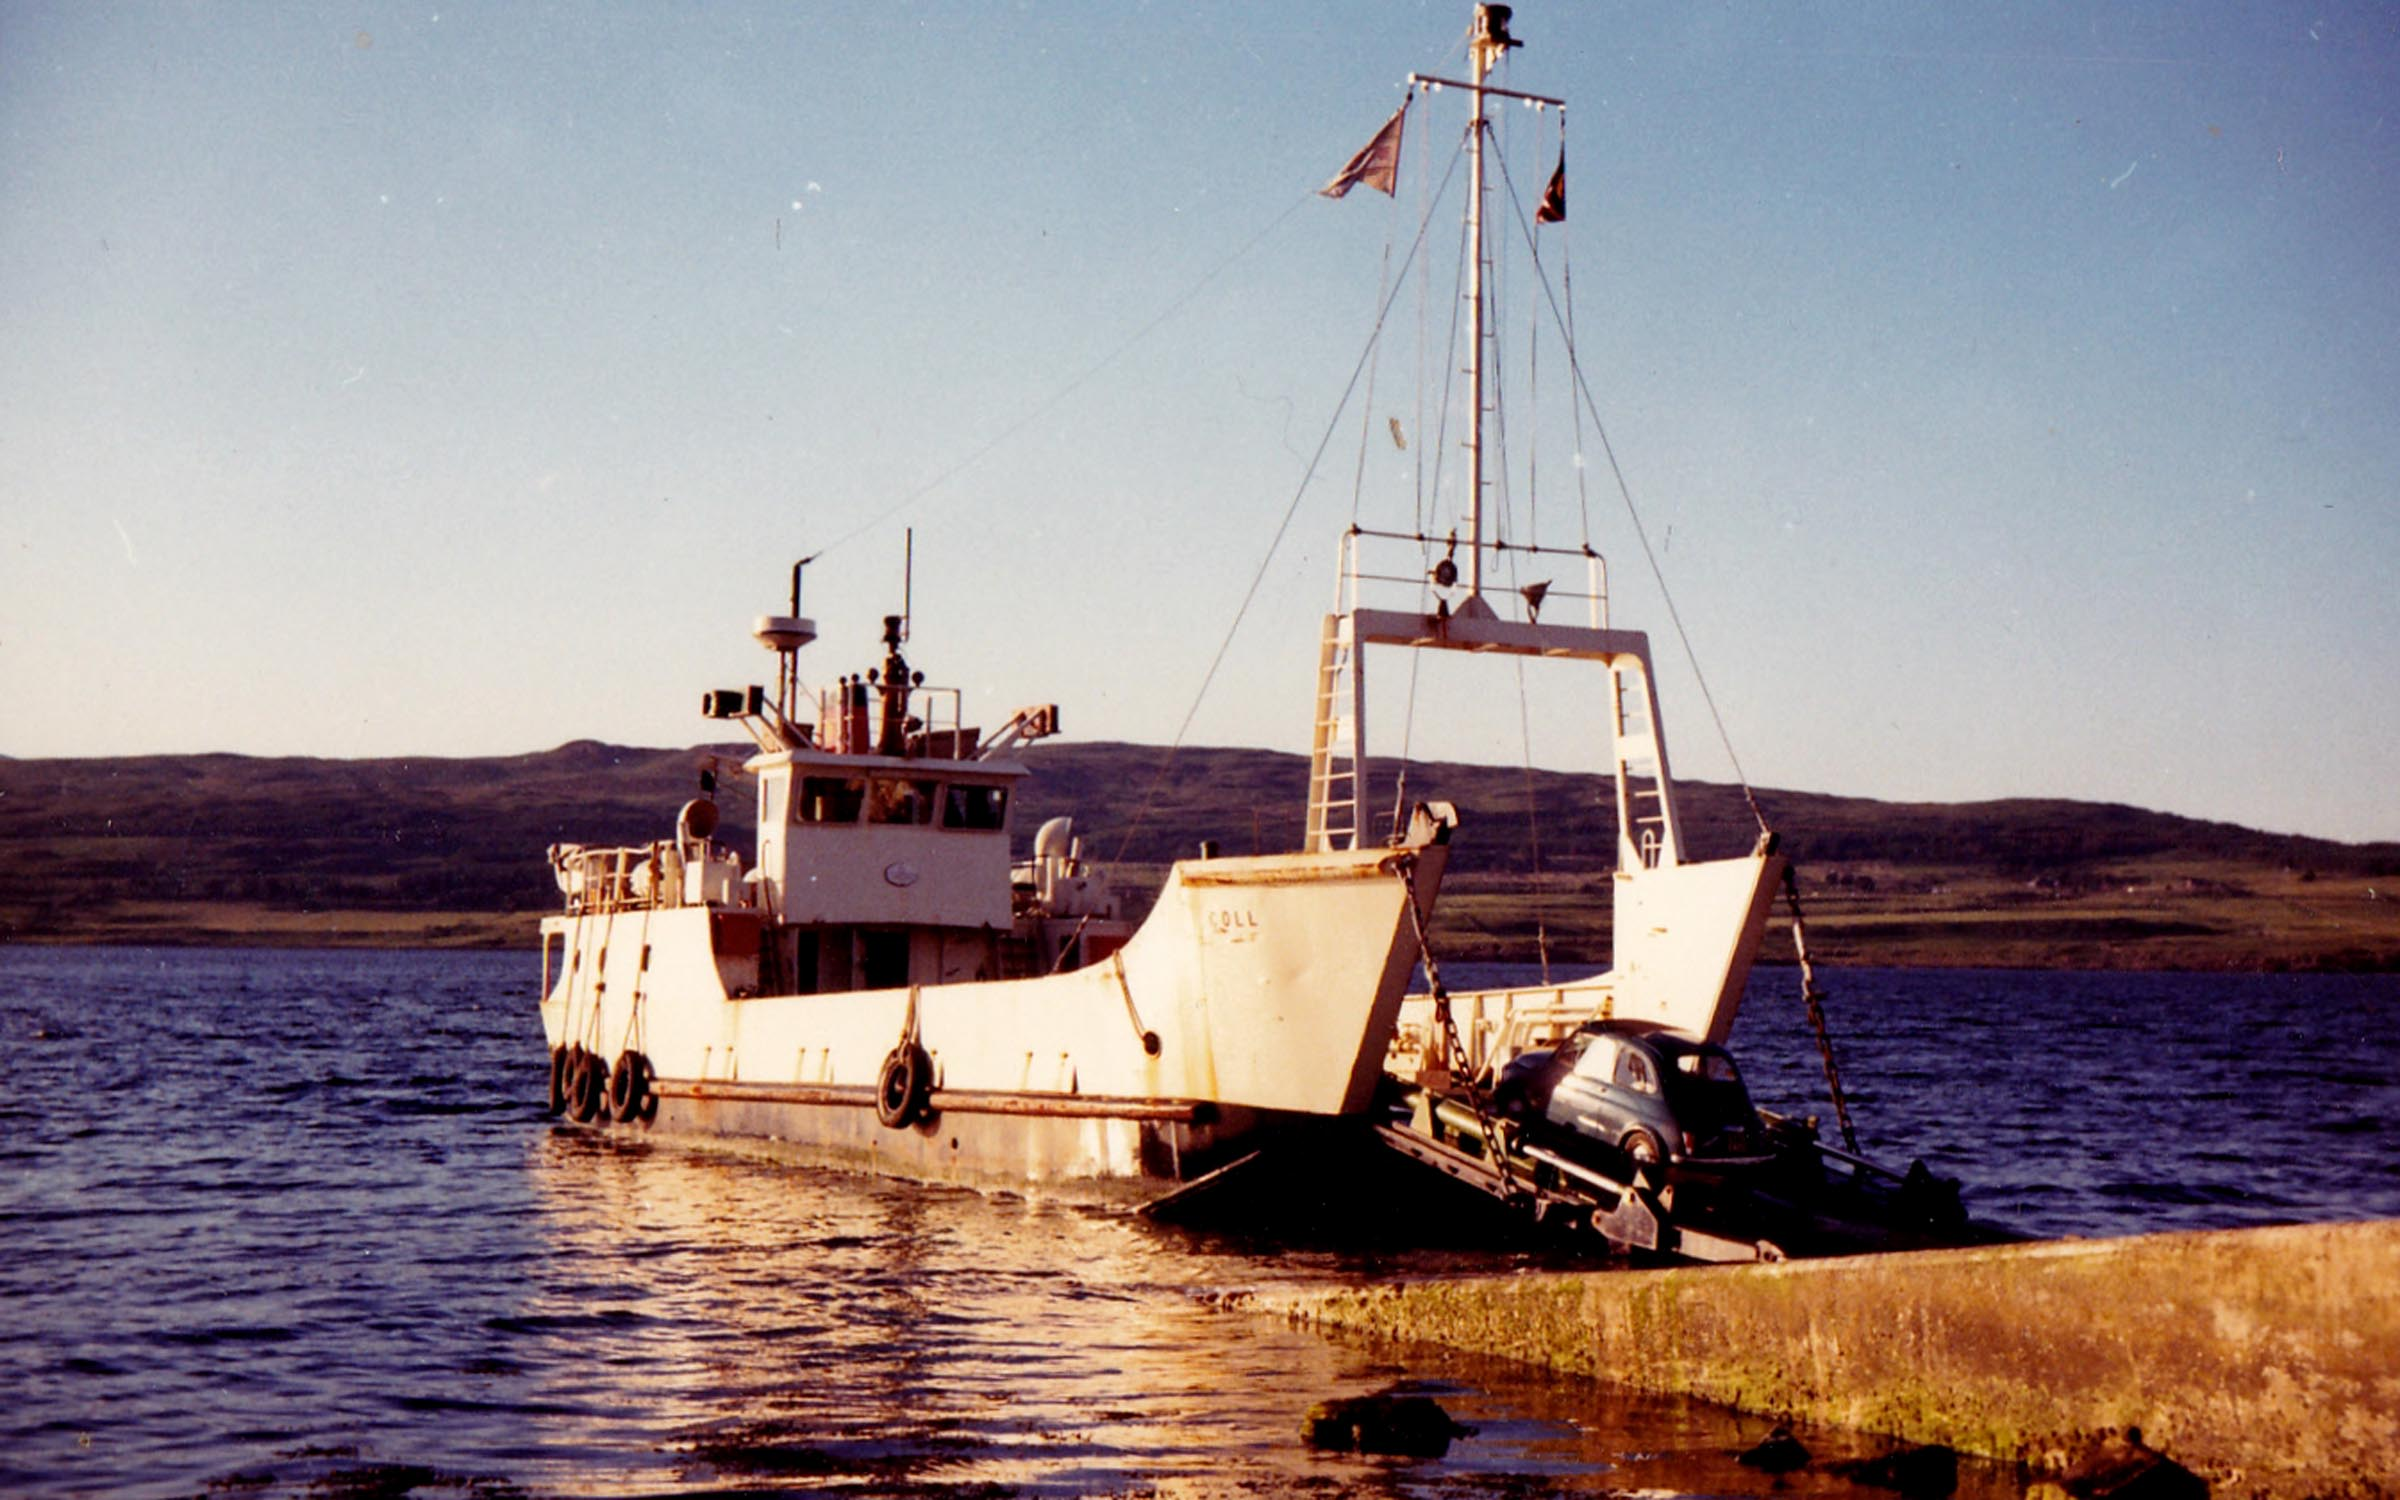 Coll loading at Fishnish (Jim Aikman Smith)